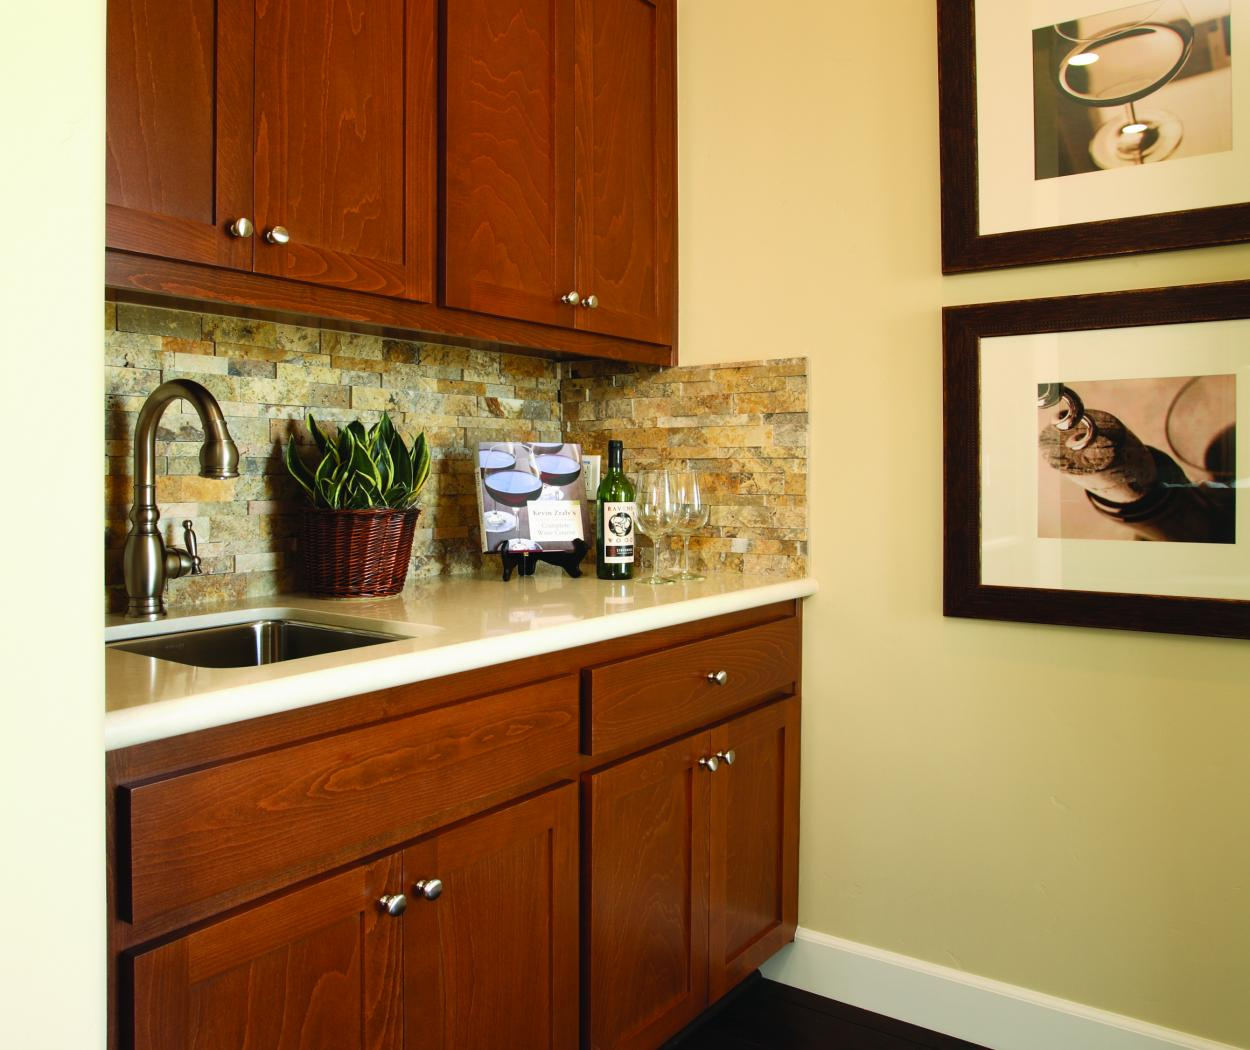 Transitional, Shaker Style Built-In with an Off White Counter Top and Amerock Chrome Knobs